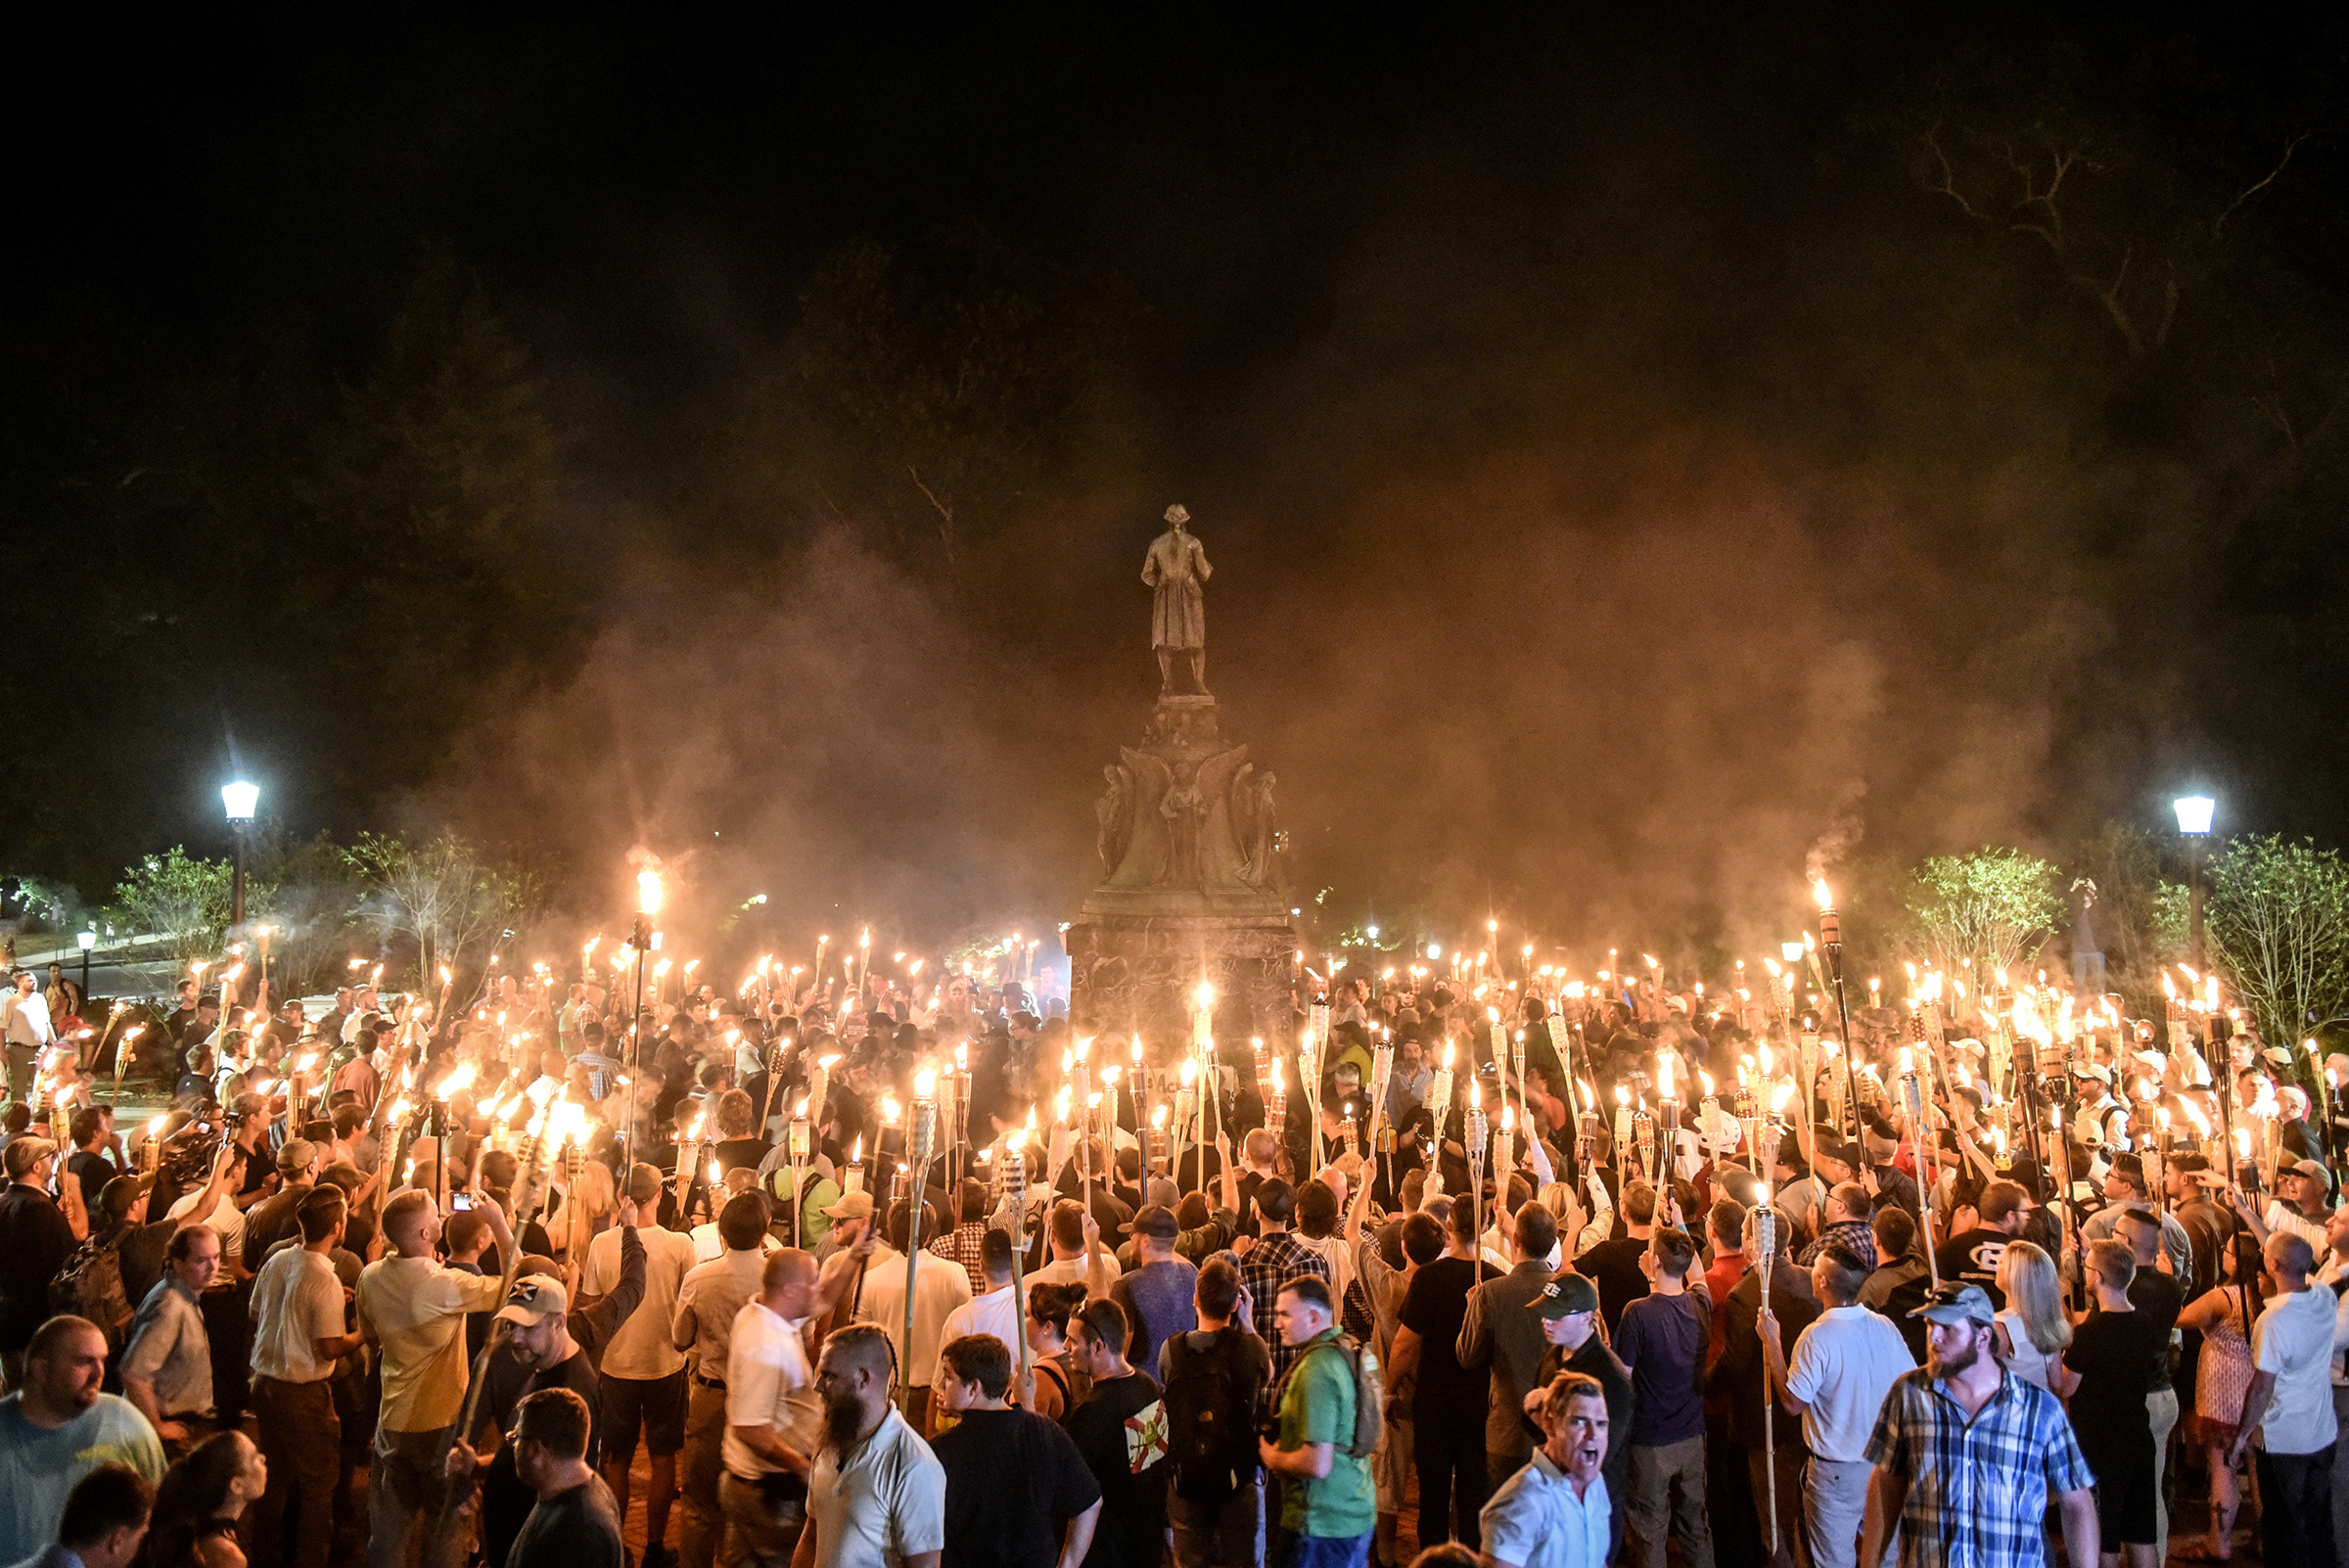 White nationalists participate in a torch-lit march on the grounds of the University of Virginia ahead of the Unite the Right Rally in Charlottesville, Virginia on Aug. 11, 2017